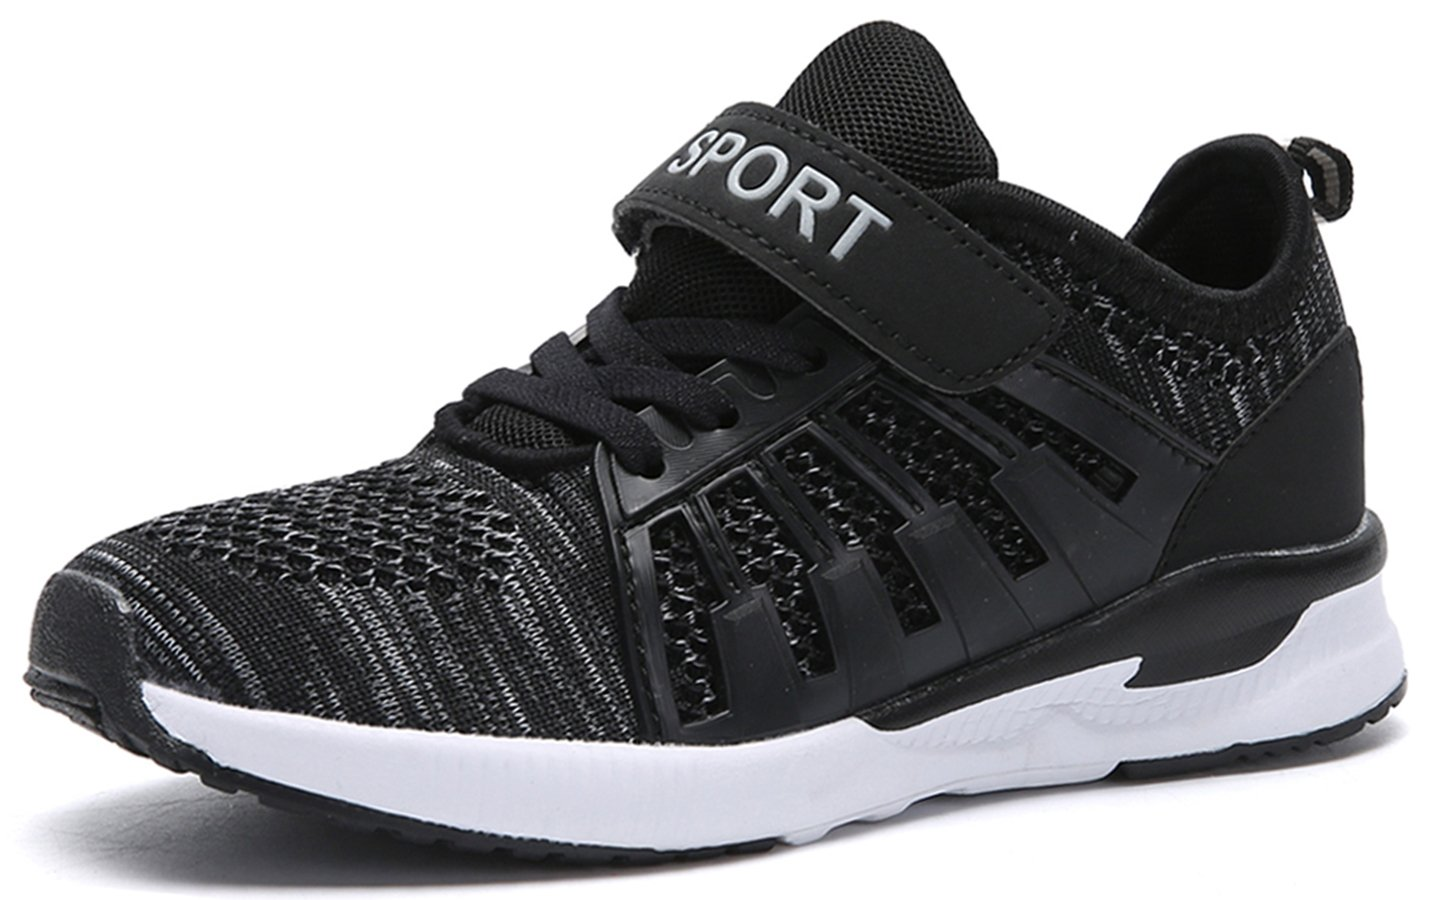 SunSunday Toddler Kid's Breathable Boys Girls Running Shoes Black 31